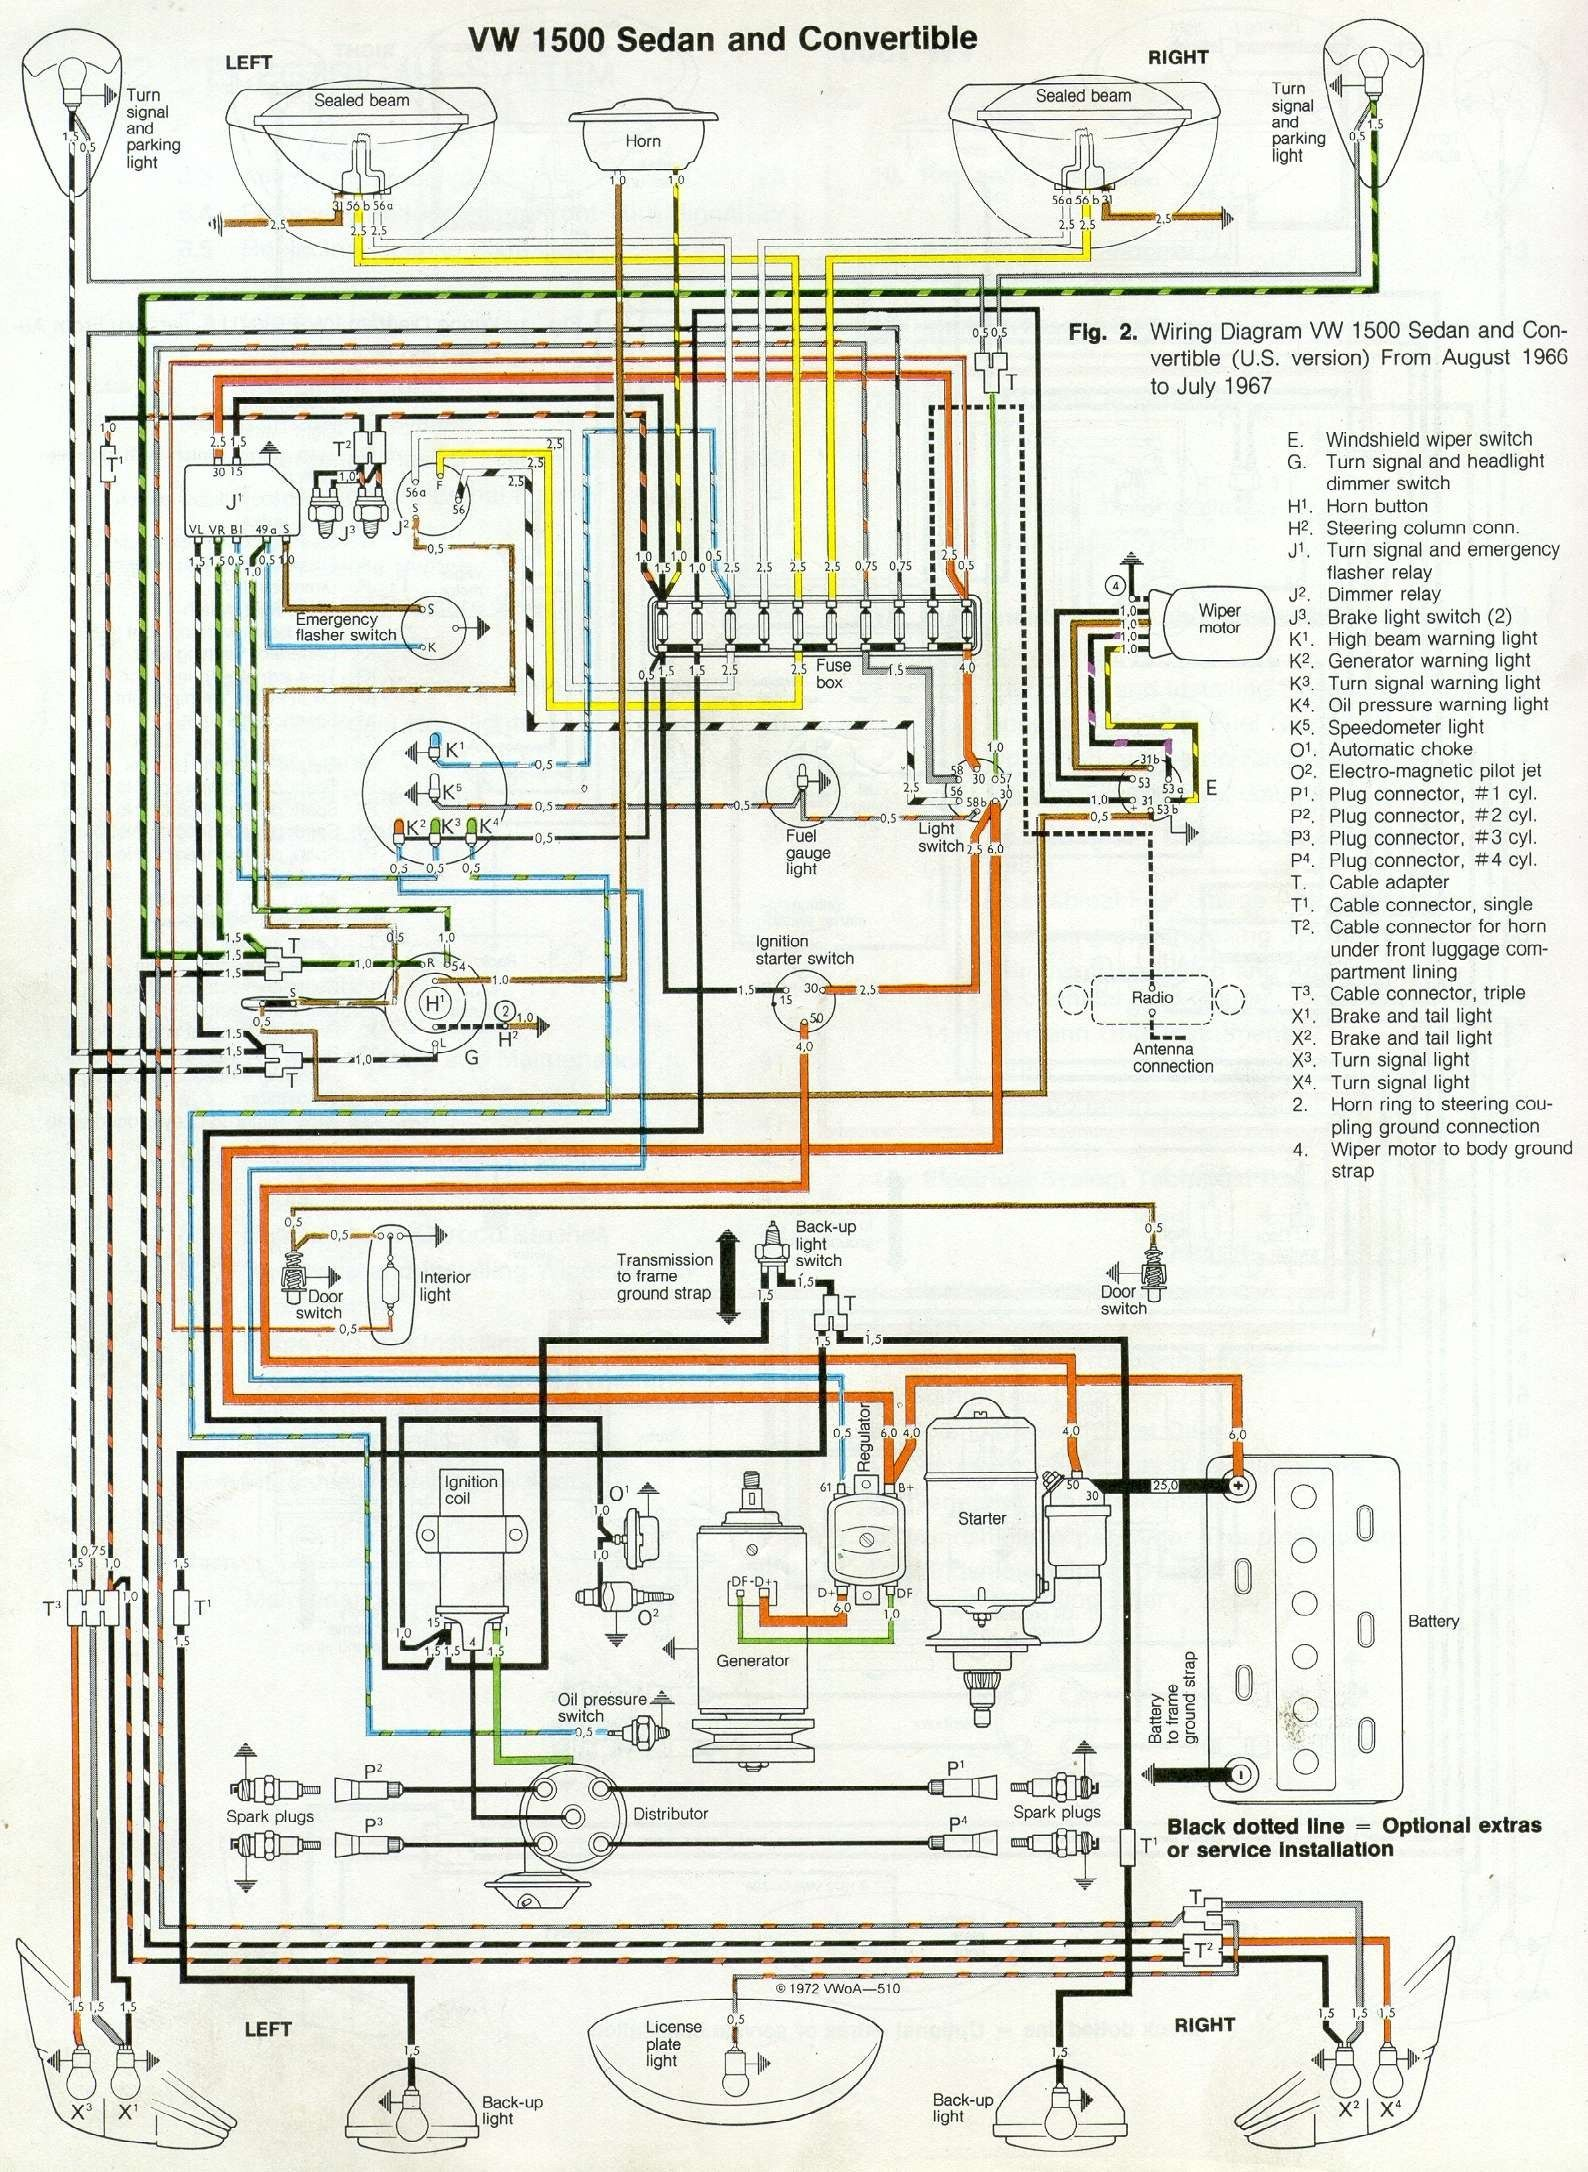 Vw 1971 Fuse Diagram Electrical Schematics Mercedes S430 Ignition 66 And 67 Beetle Wiring Volkswagen Pinterest 2003